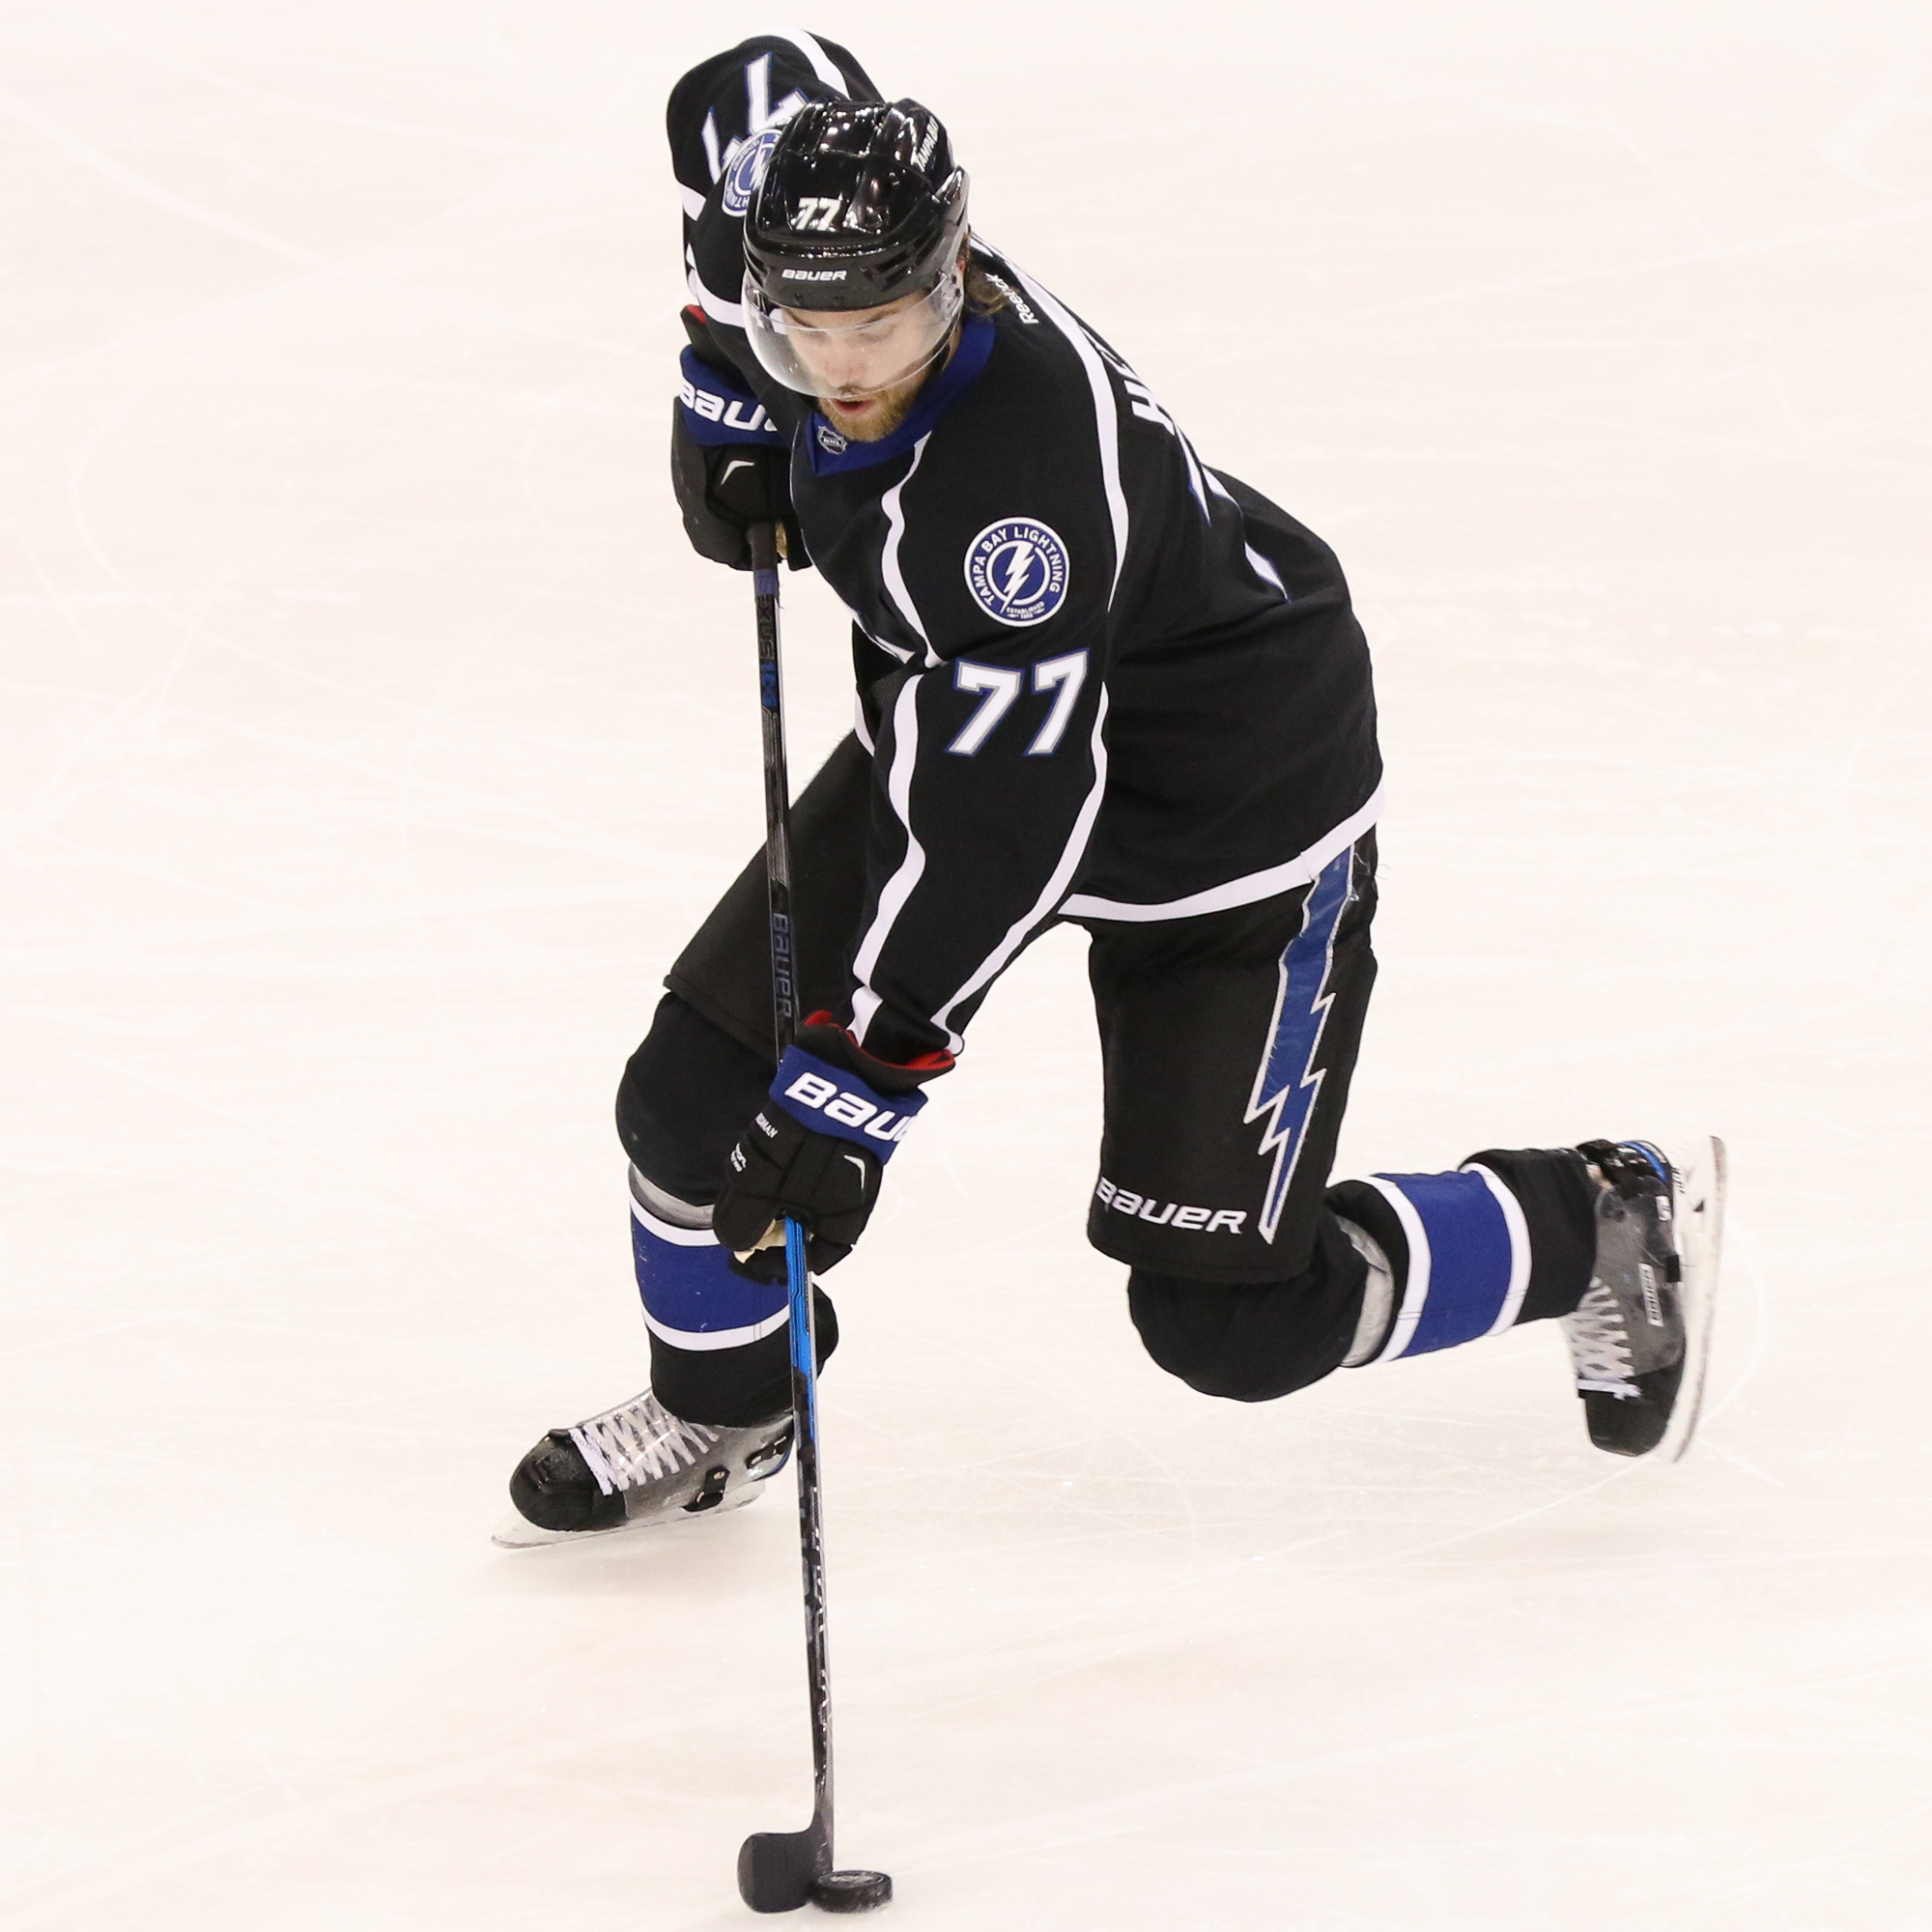 Victor Hedman tries to move the puck for Bolts./Steven Muncie